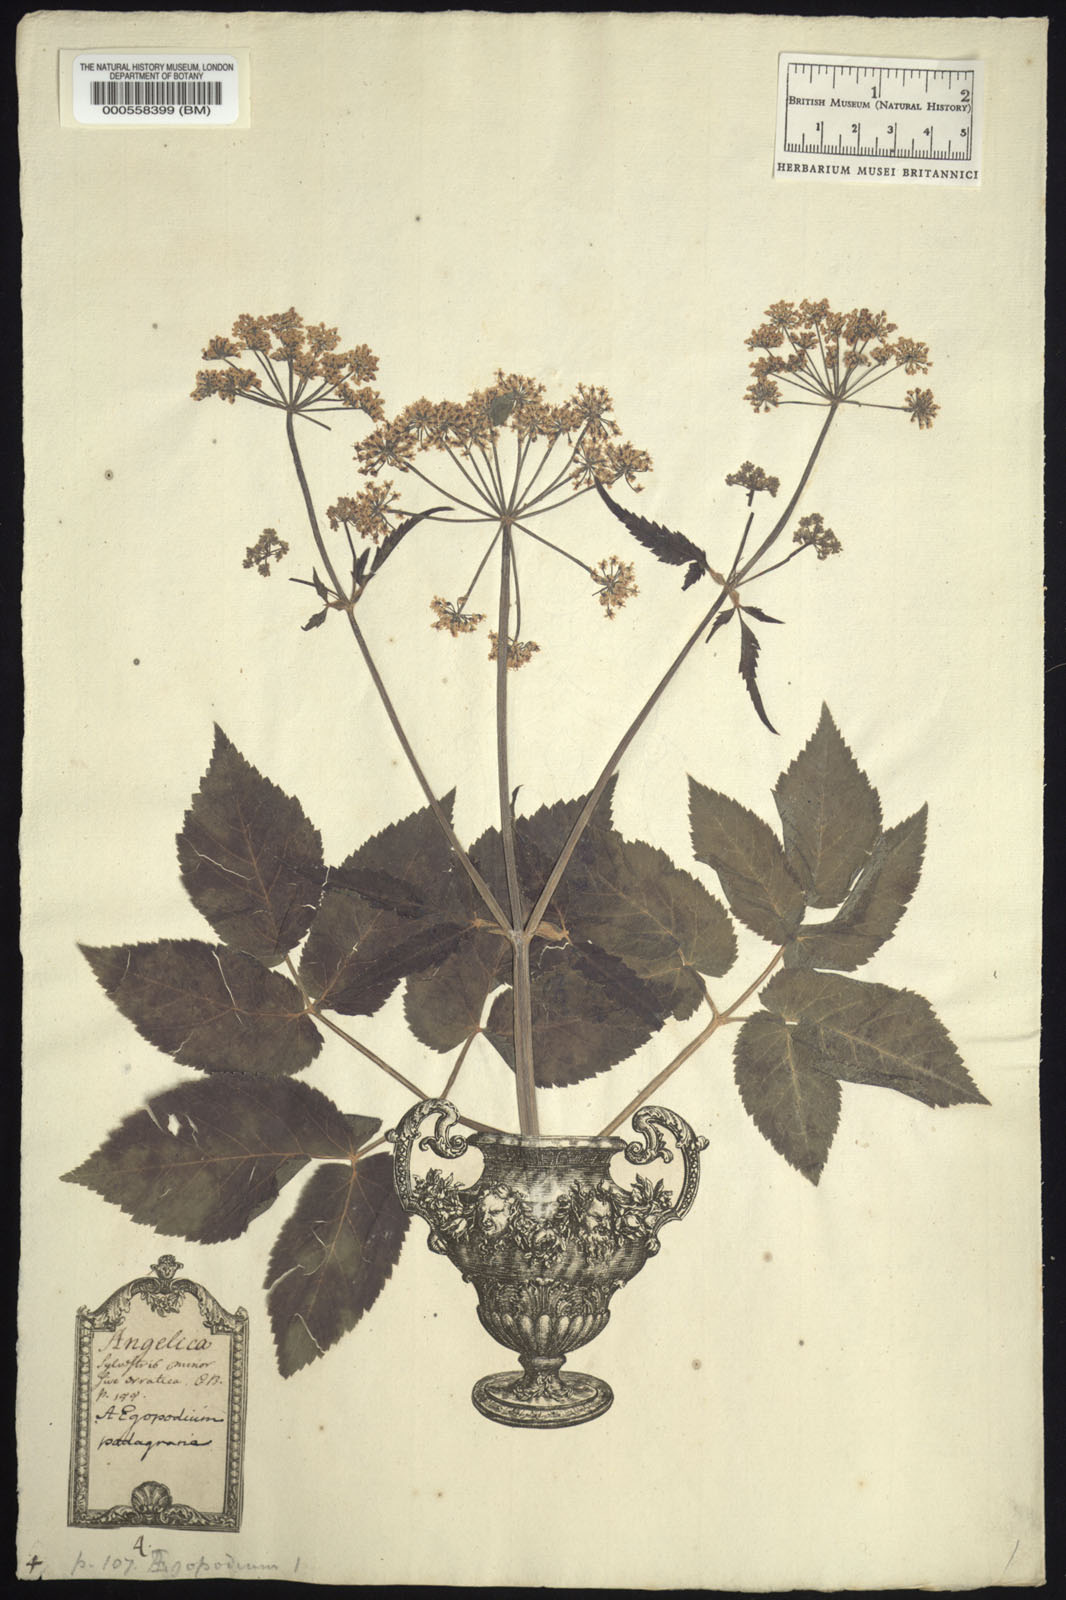 https://www.nhm.ac.uk//resources/research-curation/projects/clifford-herbarium/lgimages/BM000558399.JPG